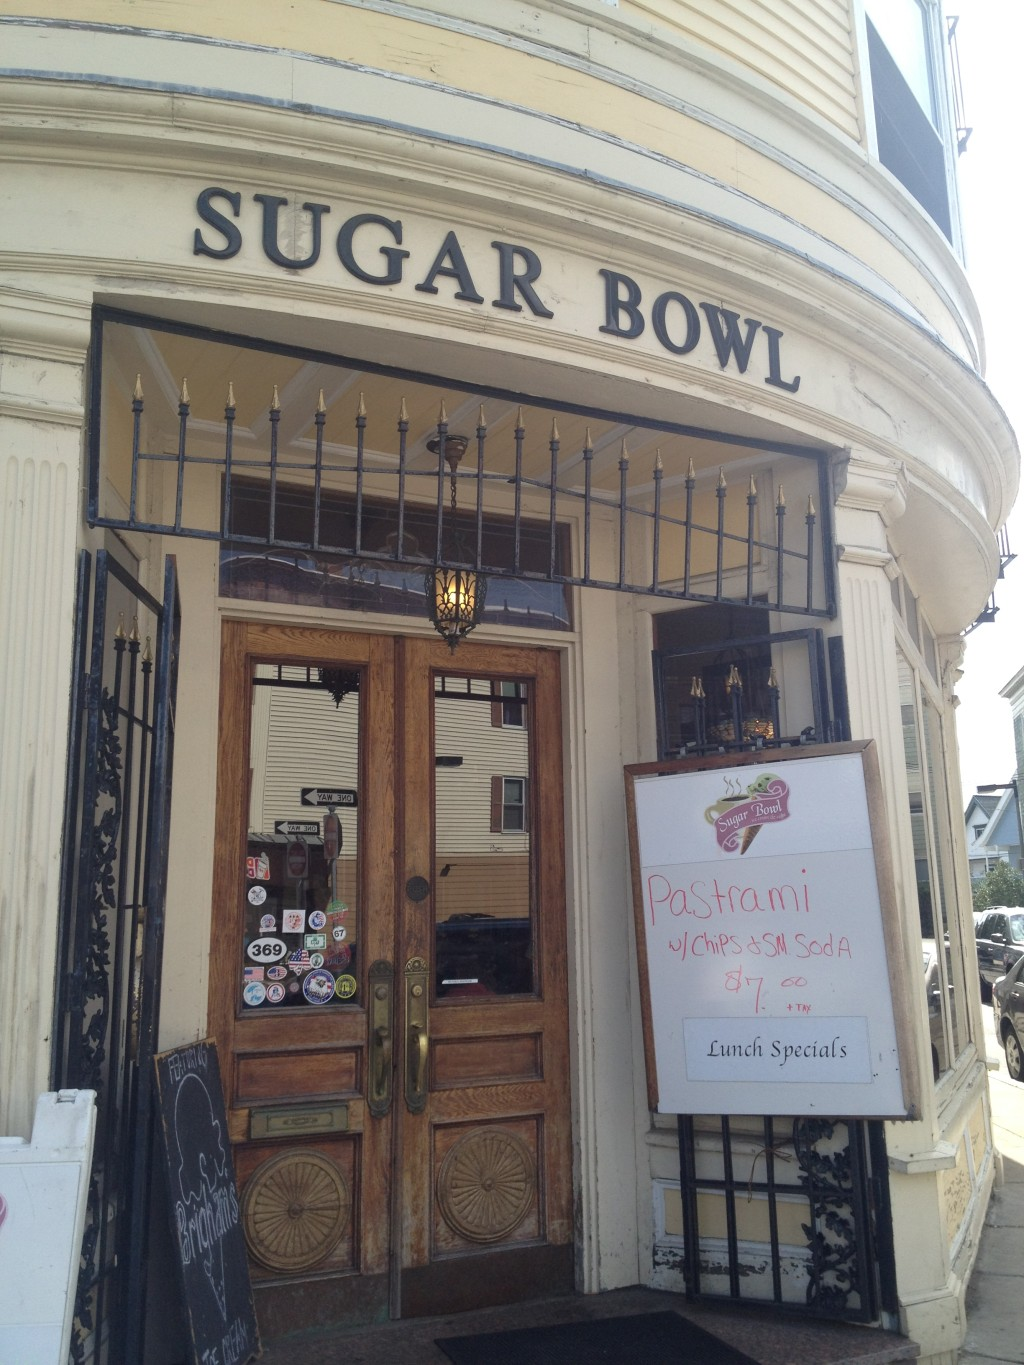 The Sugar Bowl knows coffee…